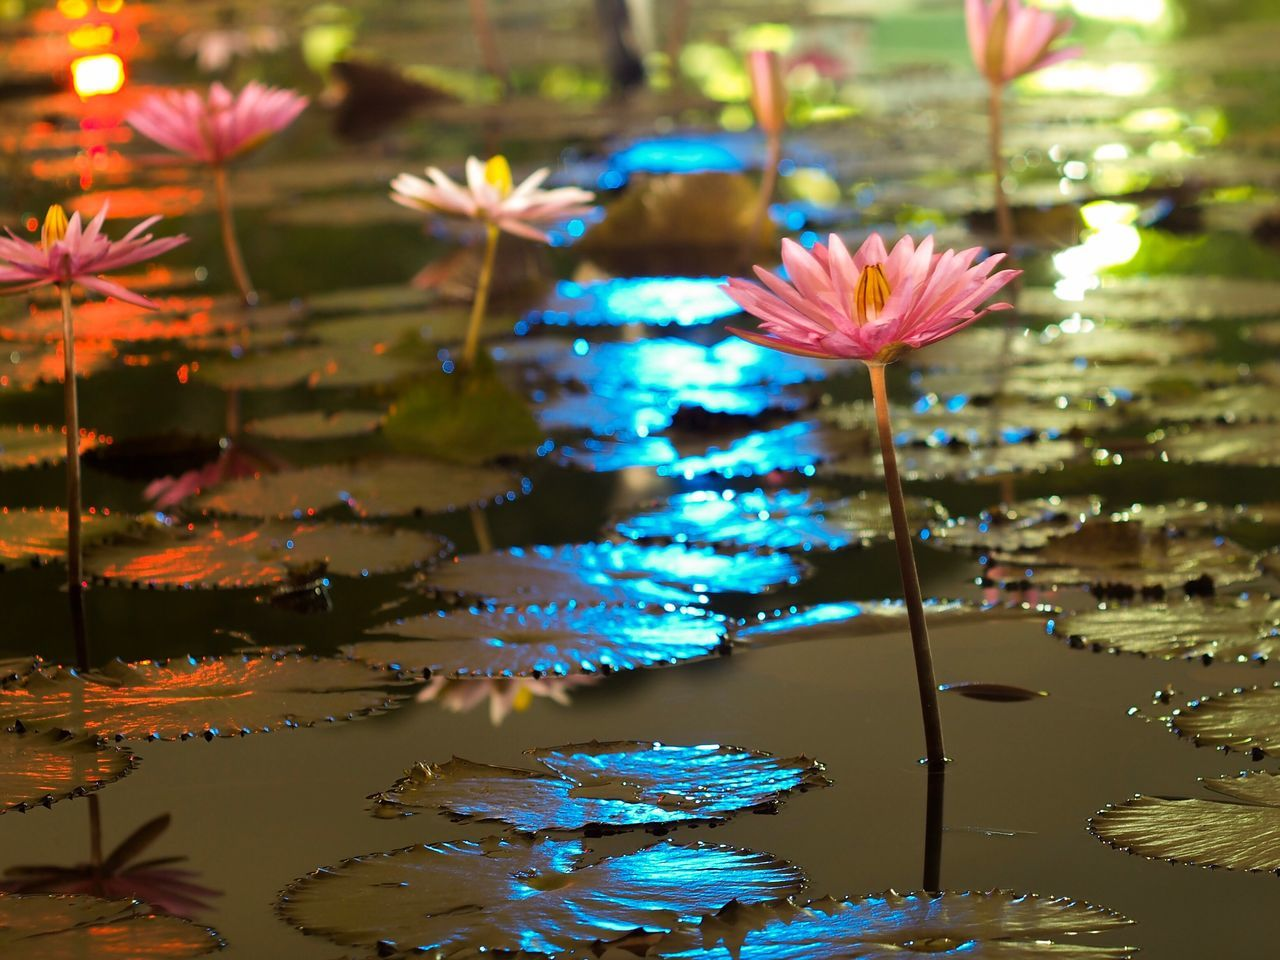 Lotus Flower Water Fragility Nature Water Lily Floating On Water Lily Pad Beauty In Nature Petal Waterfront Leaf Plant Lotus Water Lily Freshness Lotus Flower Head No People Growth Lake Blooming Reflections Nature Creative Light And Shadow Outdoors Beauty In Nature